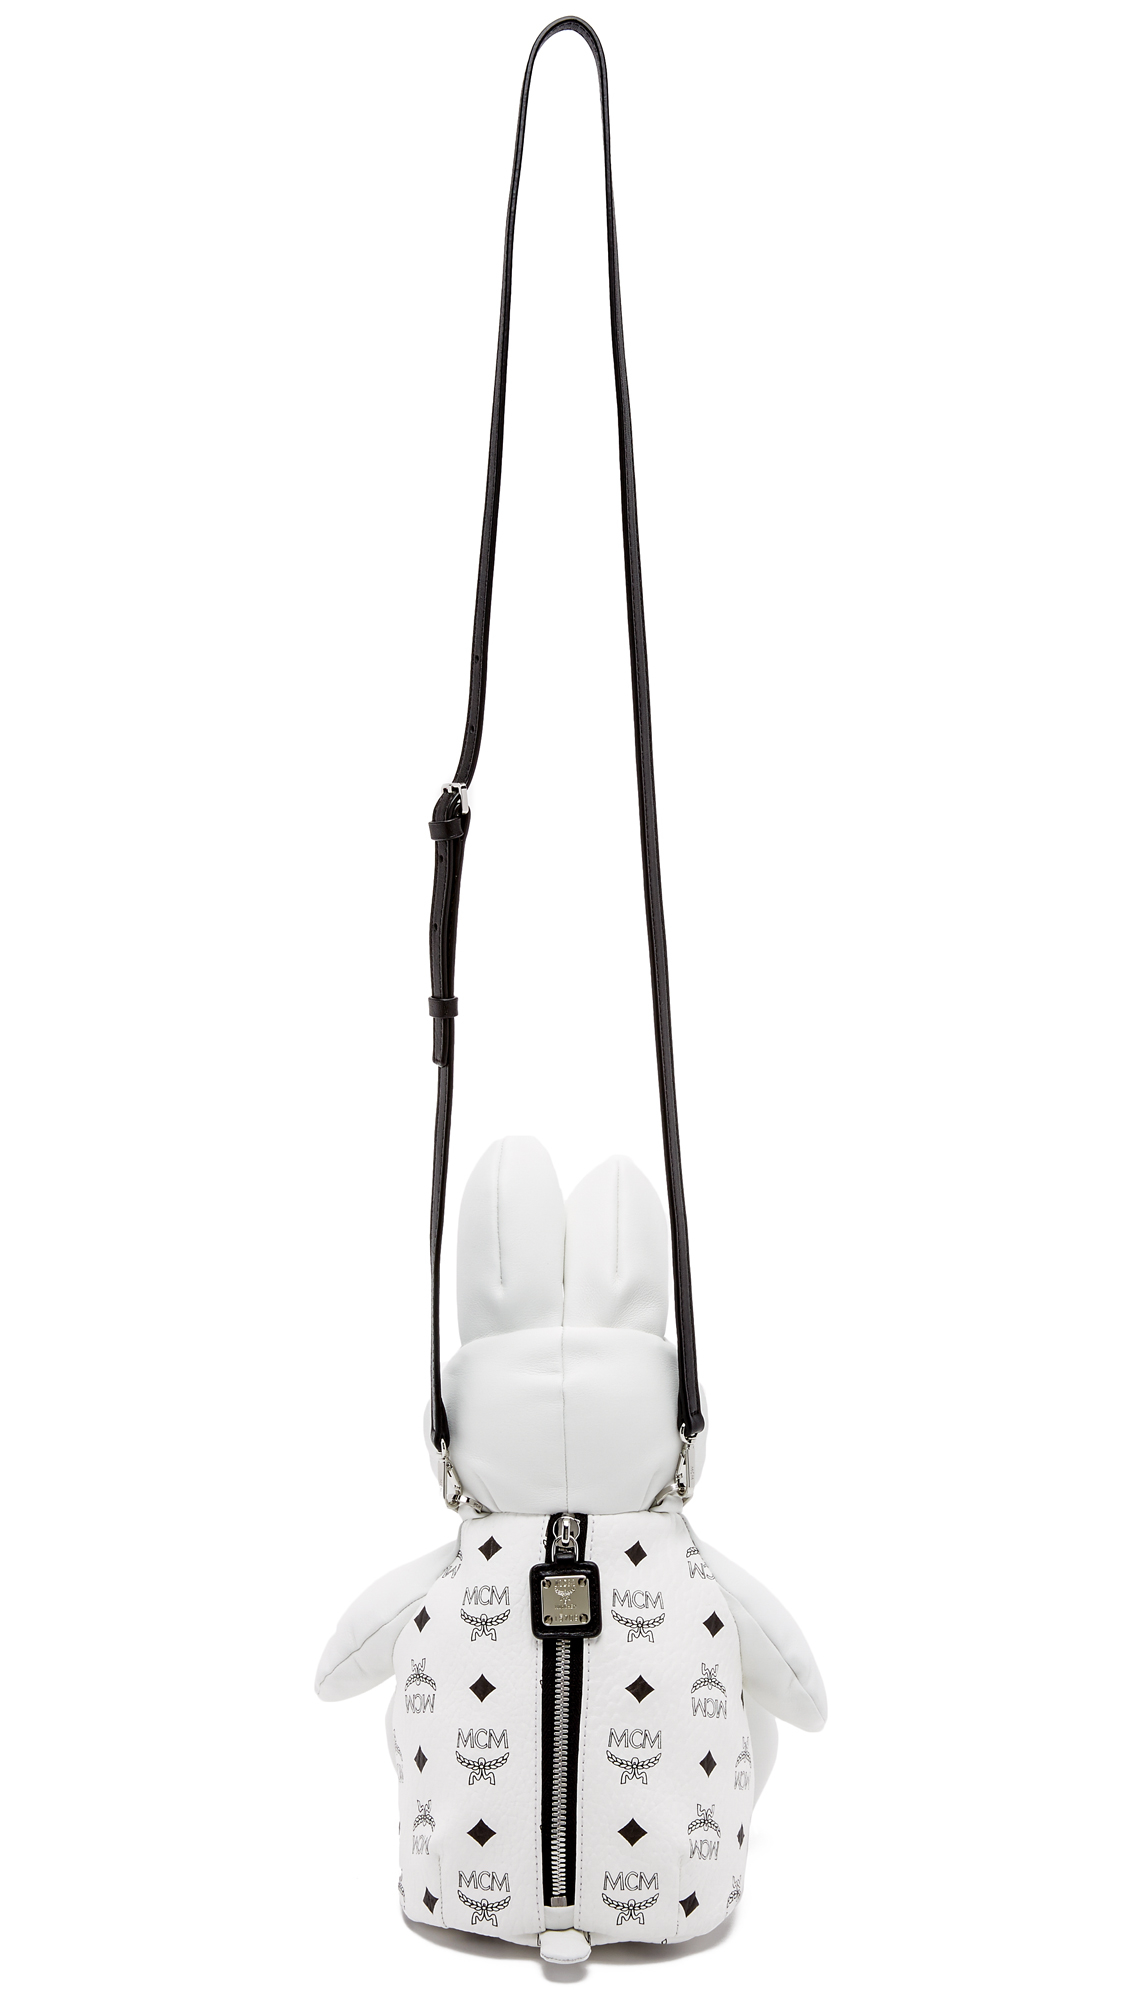 MCM Leather Labbit Cross Body Bag in White